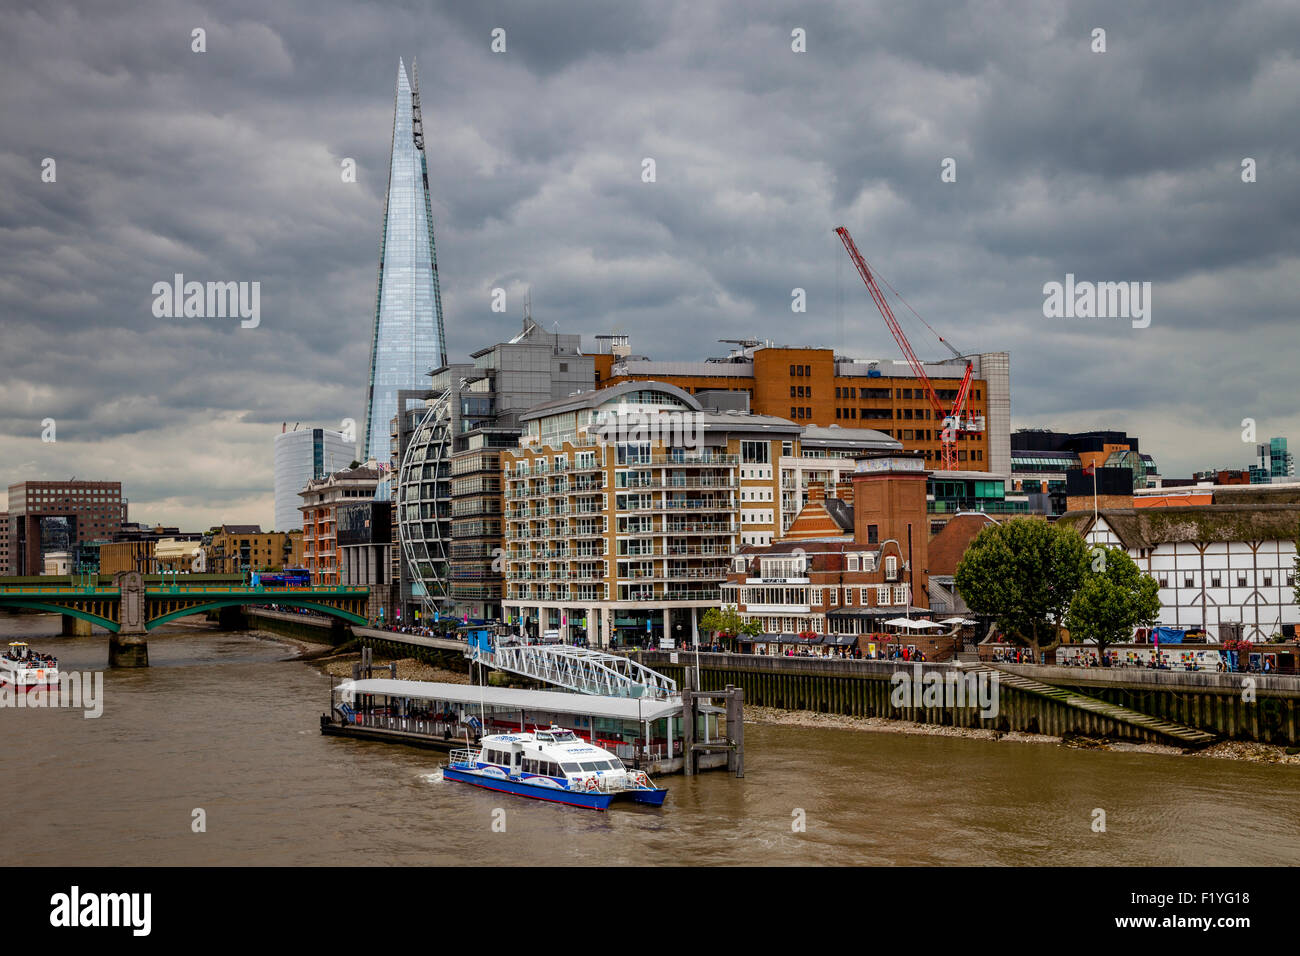 The Shard, The River Thames and Riverside Properties, London, England Stock Photo